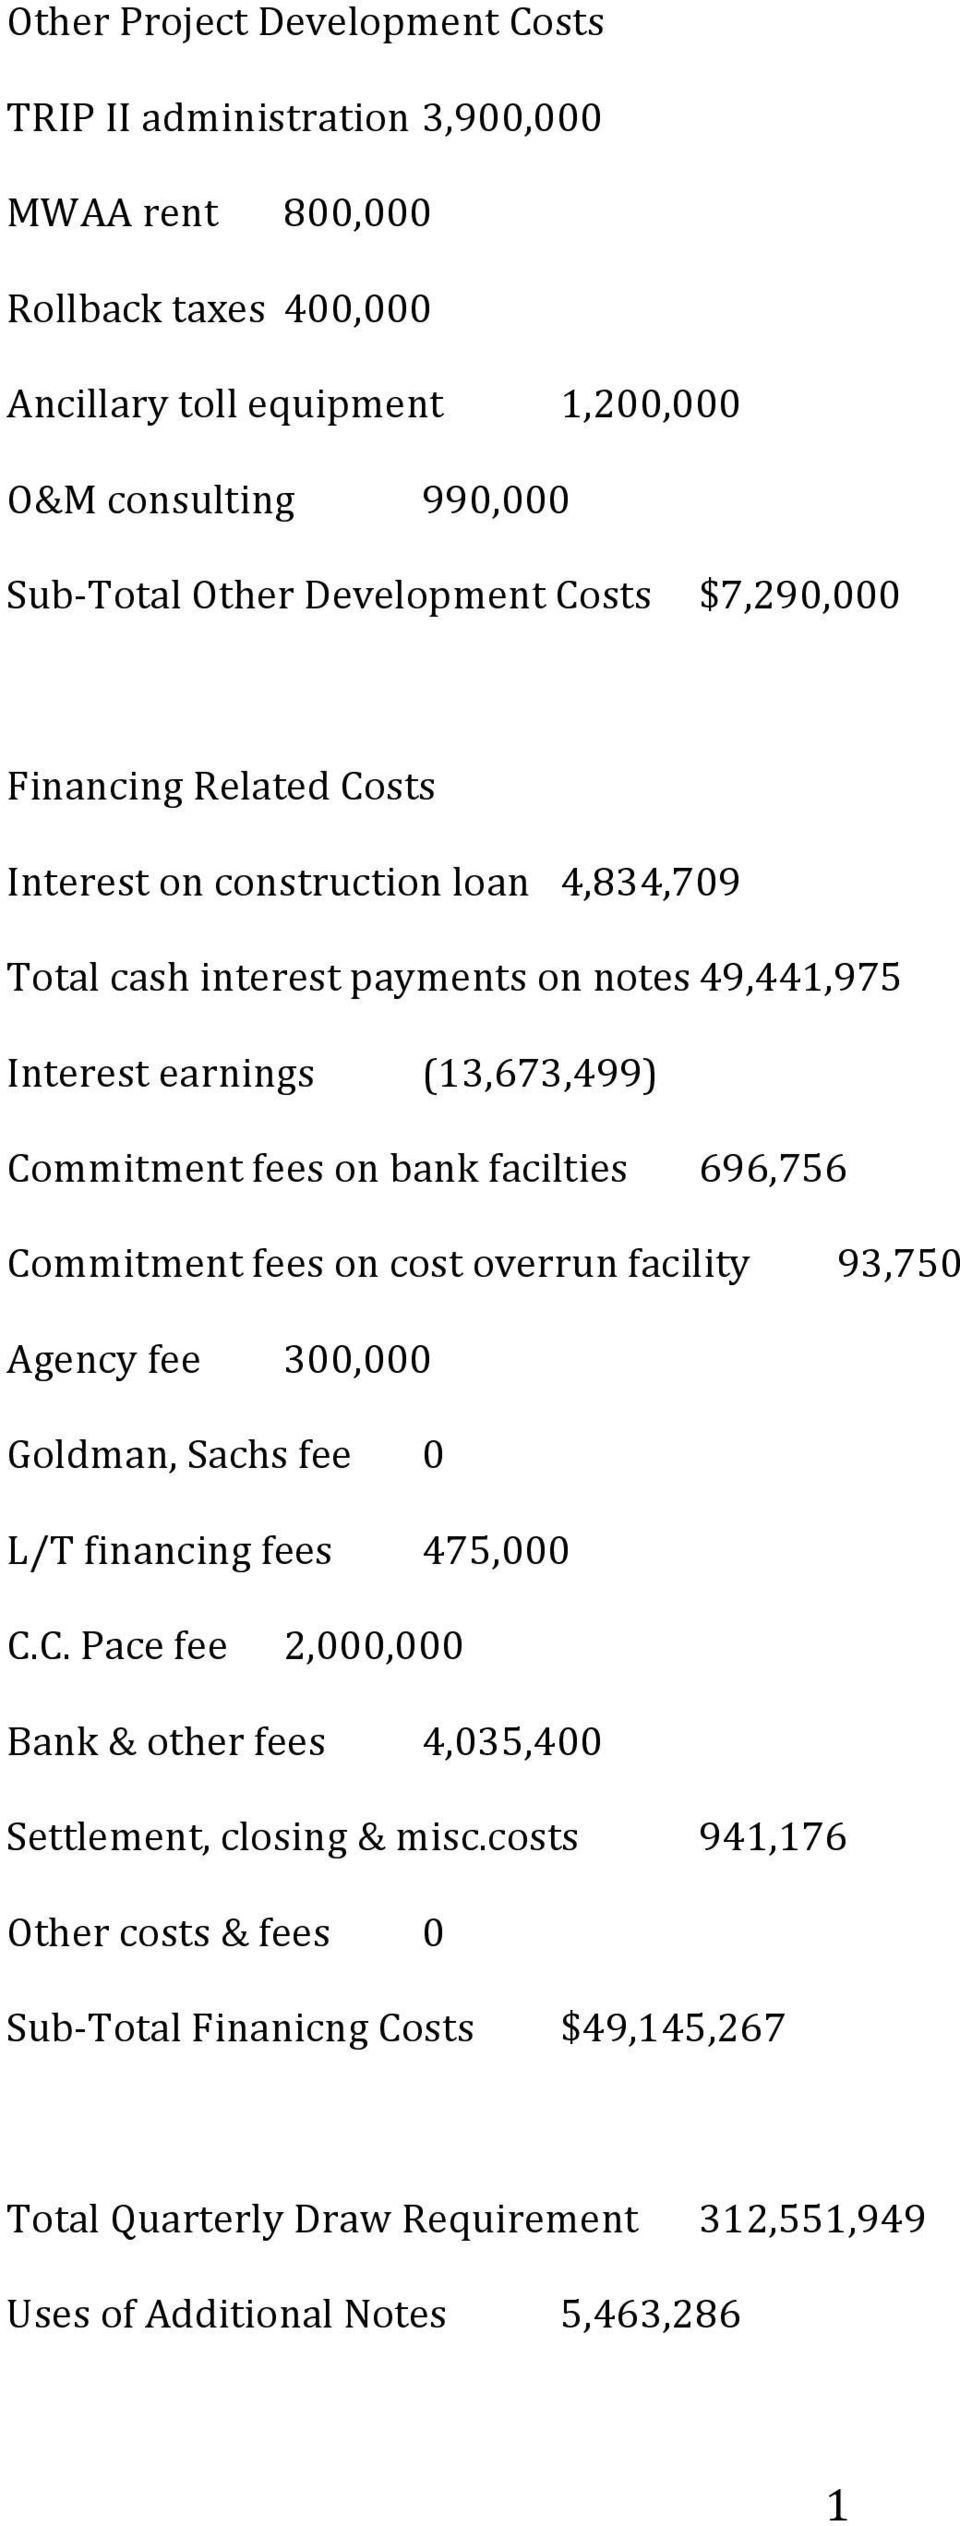 fees on bank facilties 696,756 Commitment fees on cost overrun facility 93,750 Agency fee 300,000 Goldman, Sachs fee L/T financing fees 0 475,000 C.C. Pace fee 2,000,000 Bank & other fees 4,035,400 Settlement, closing & misc.